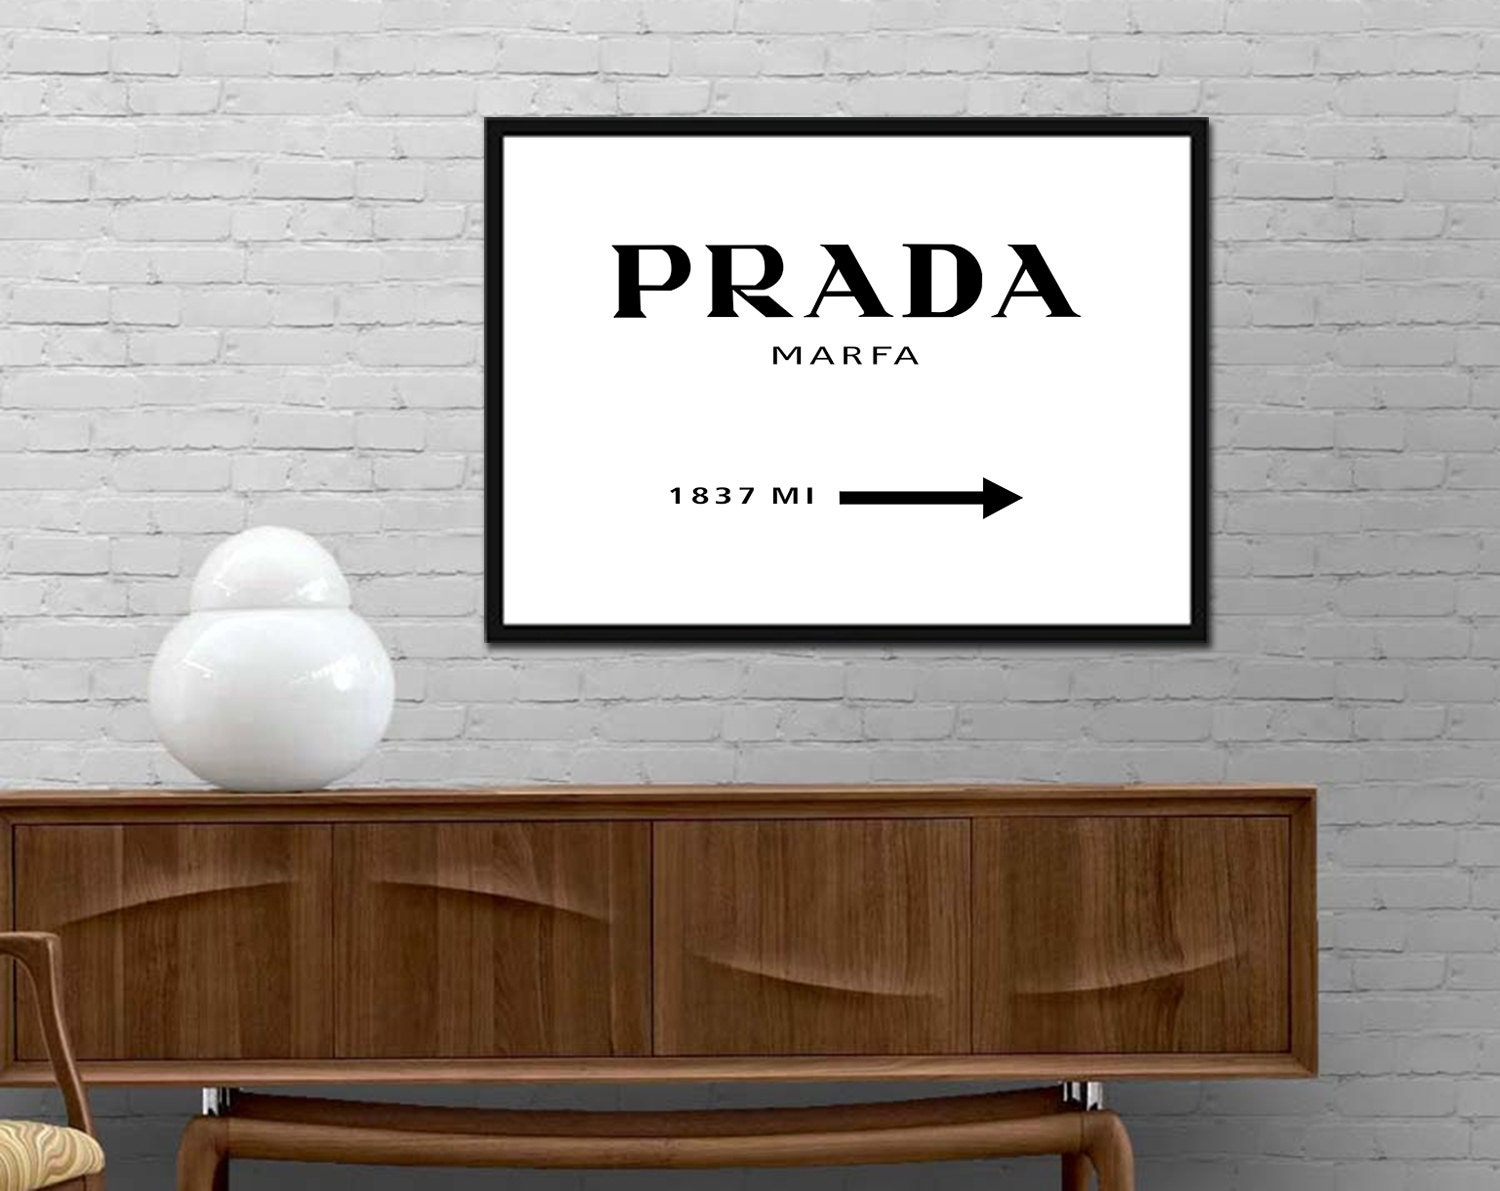 replica prada mens wallet - Popular items for fashion poster on Etsy